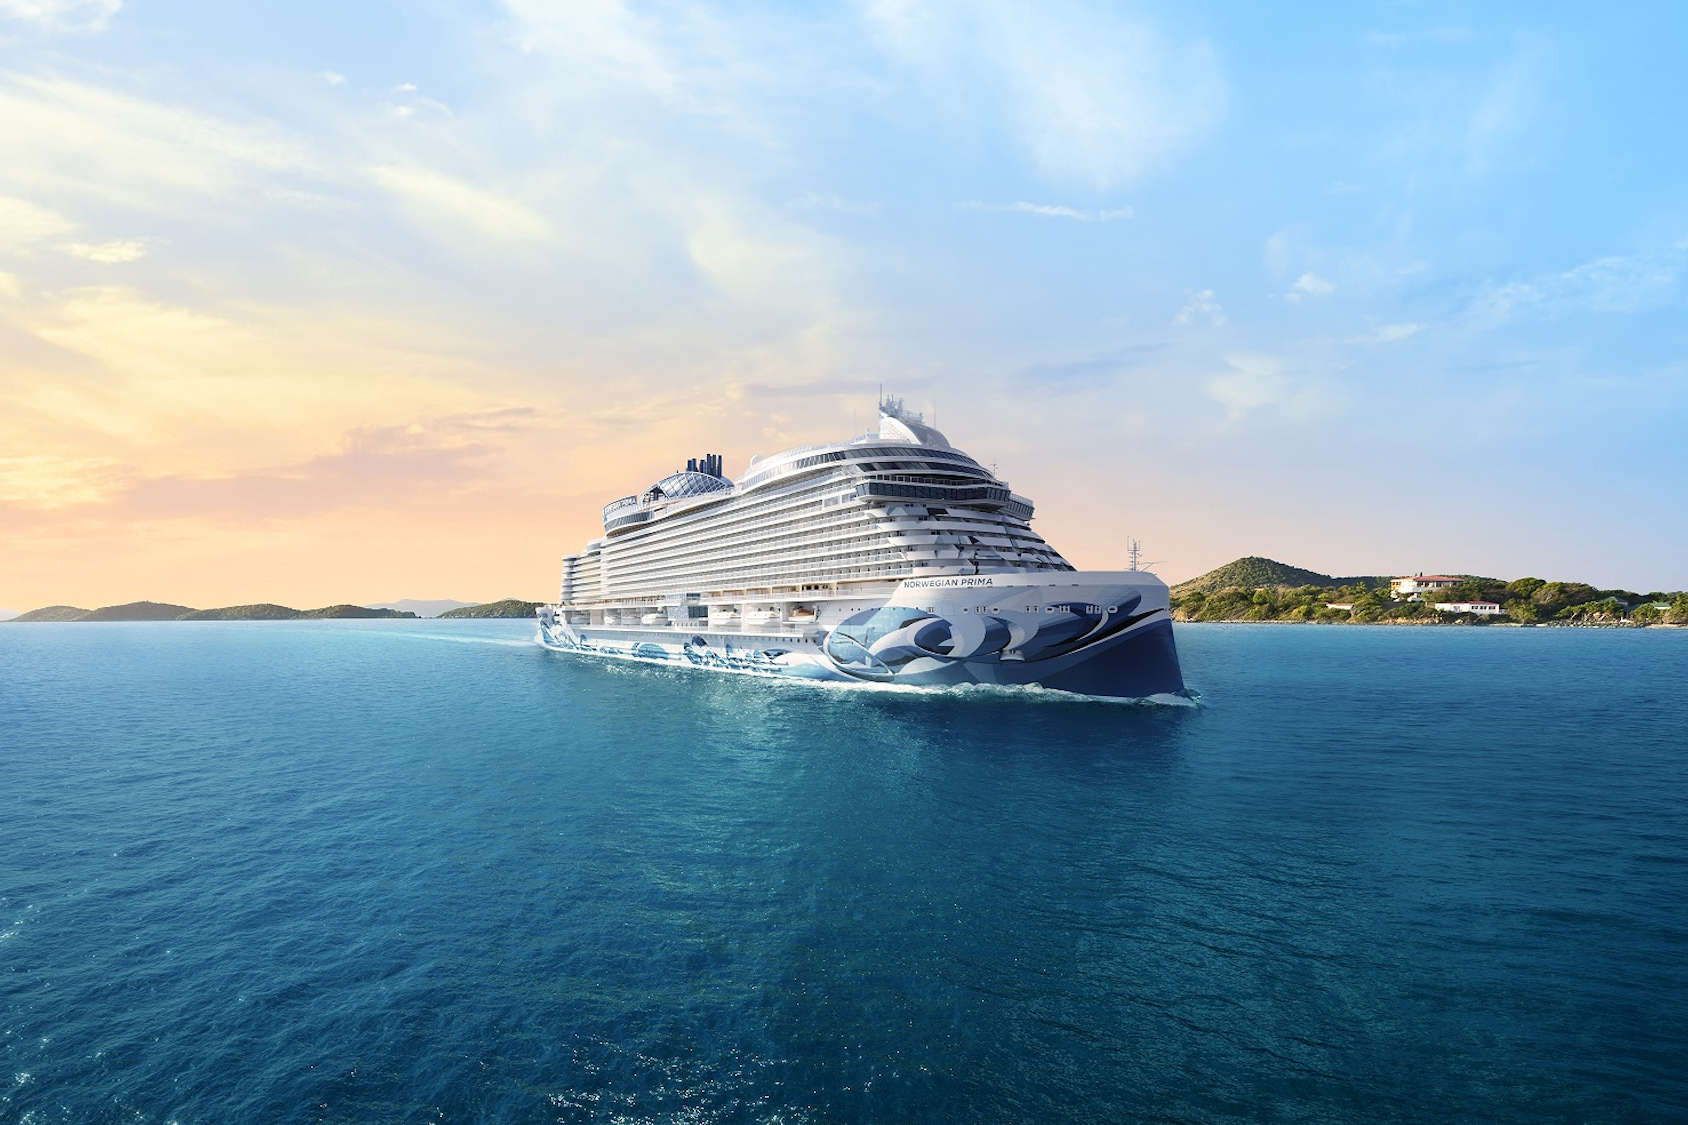 Norwegian Prima, the first in her class of six vessels, will be the industry's most spacious new cruise ship offering the most outdoor deck space and the most expansive accommodations of any new build.